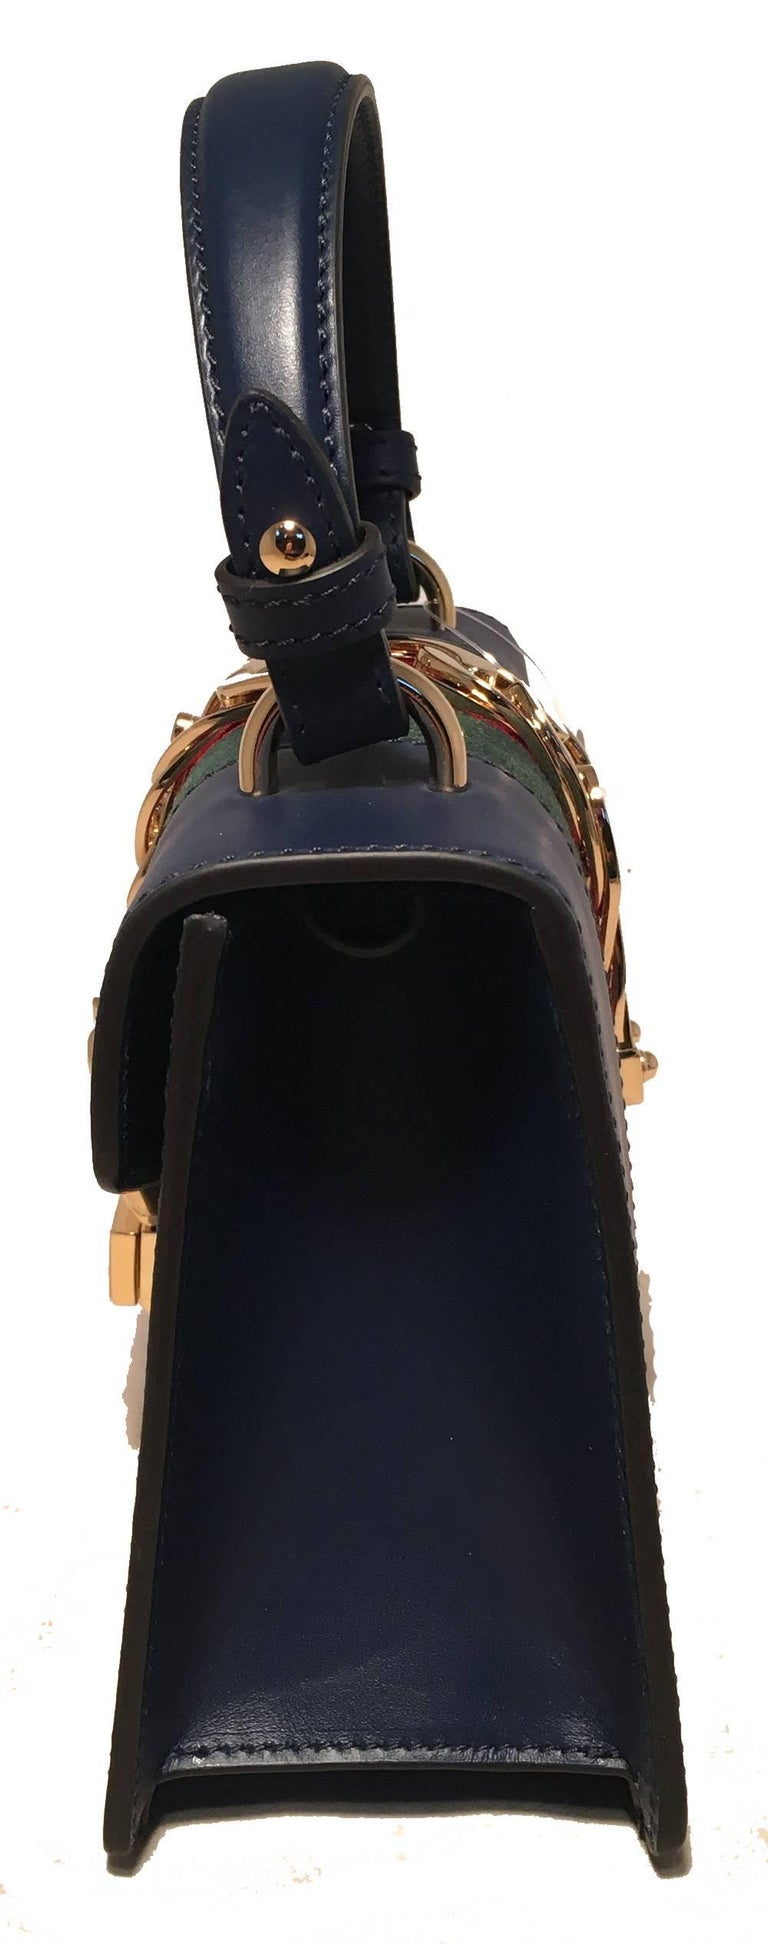 Gucci Navy Blue Leather Sylvie Mini Handbag with Strap in new excellent condition. Navy blue leather exterior trimmed with gold hardware and signature red and green striped canvas center. Unique buckle front closure opens to a beige suede interior